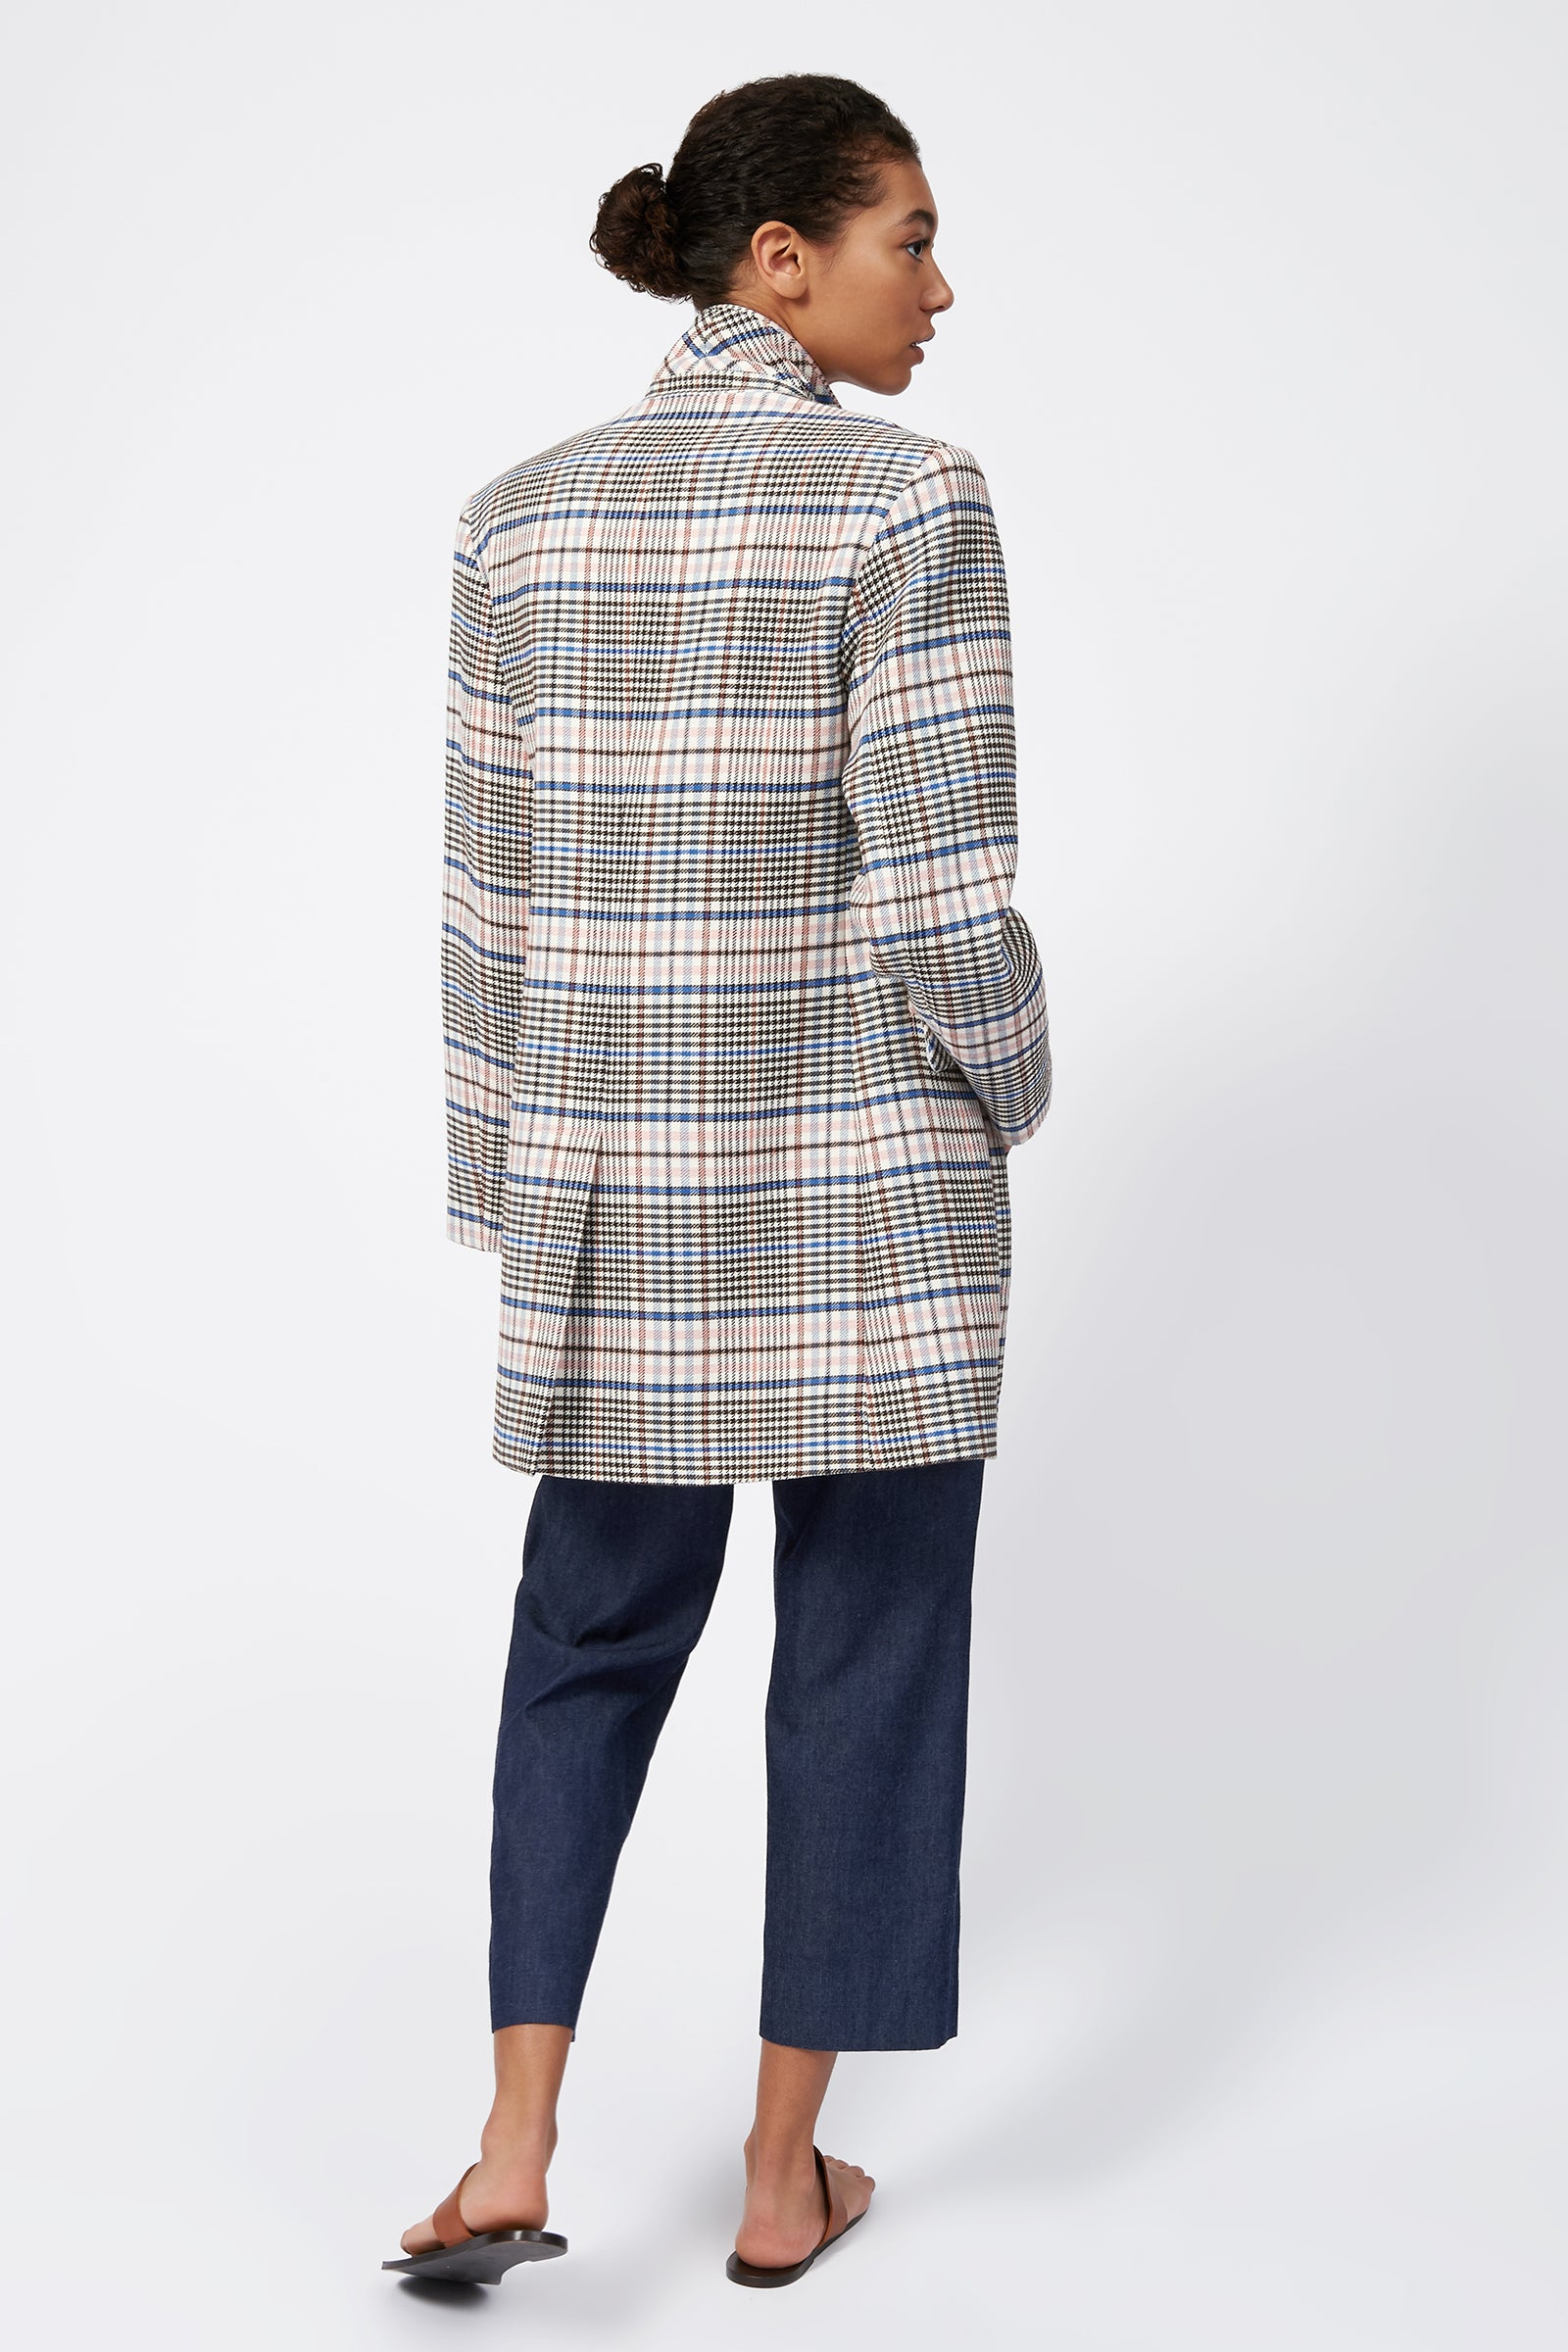 Kal Rieman Plaid Car Coat on Model Full Back View